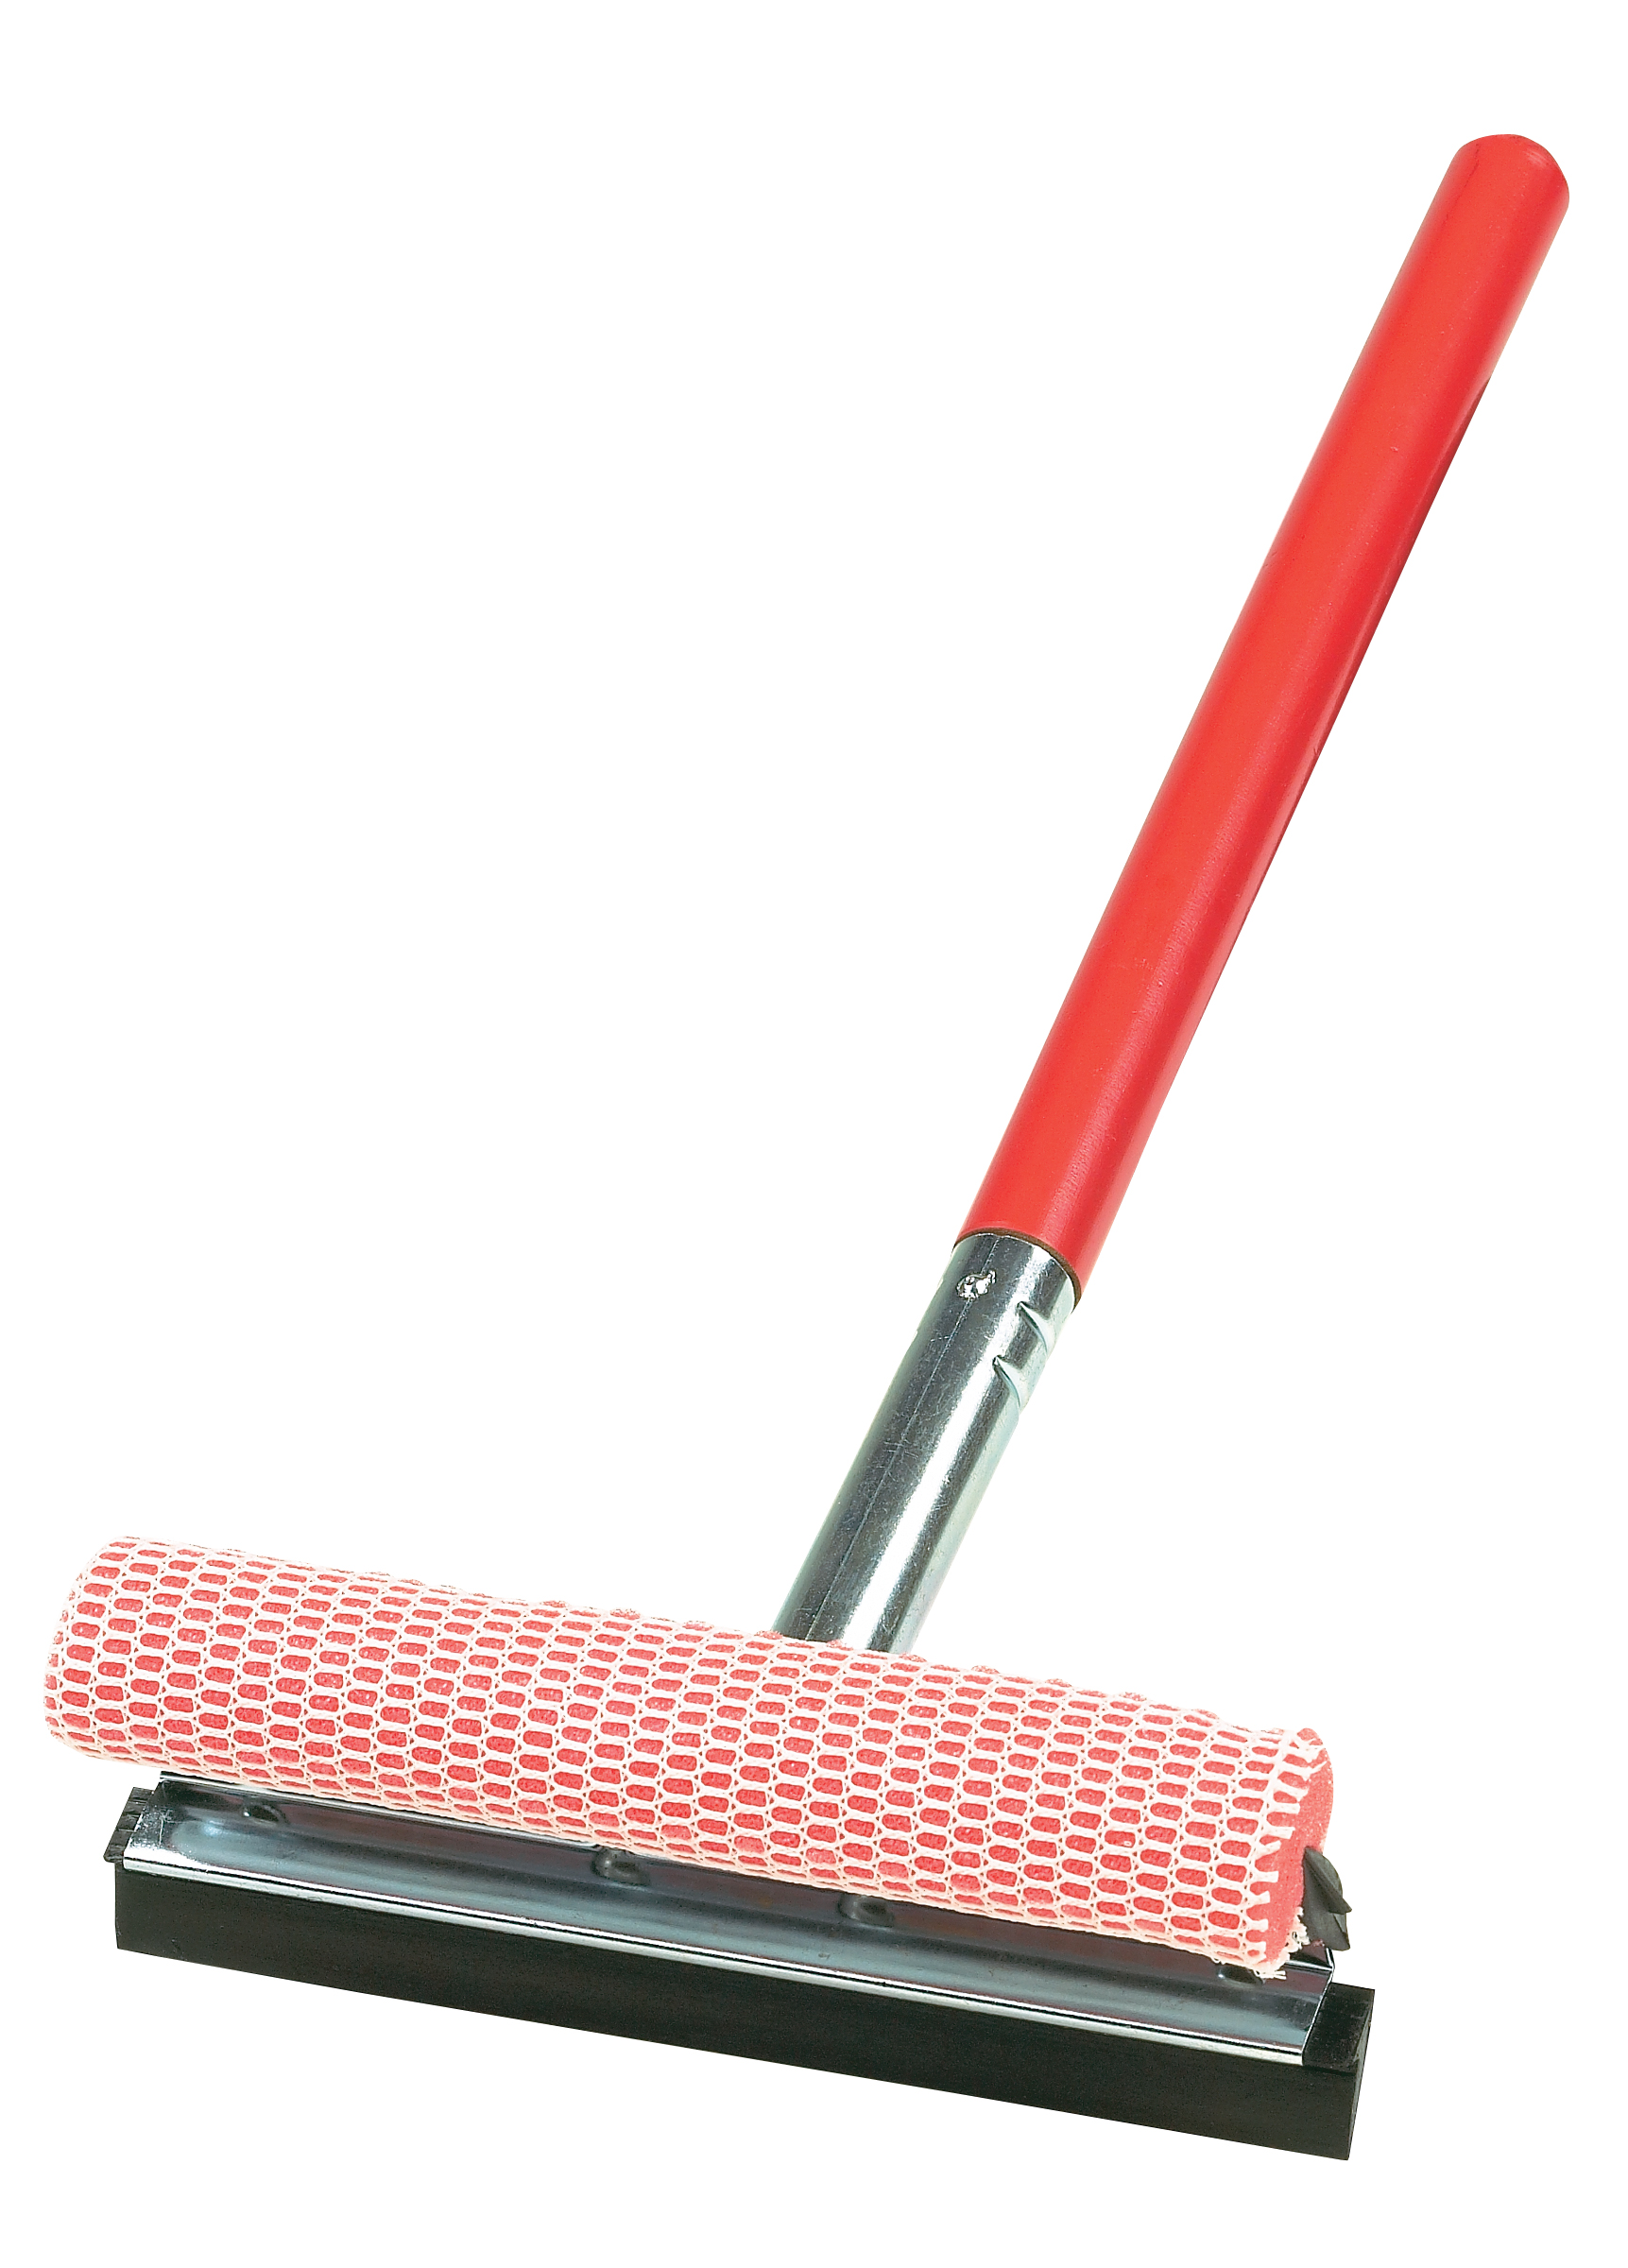 9039R Carrand Squeegee 20 Inch Handle Length